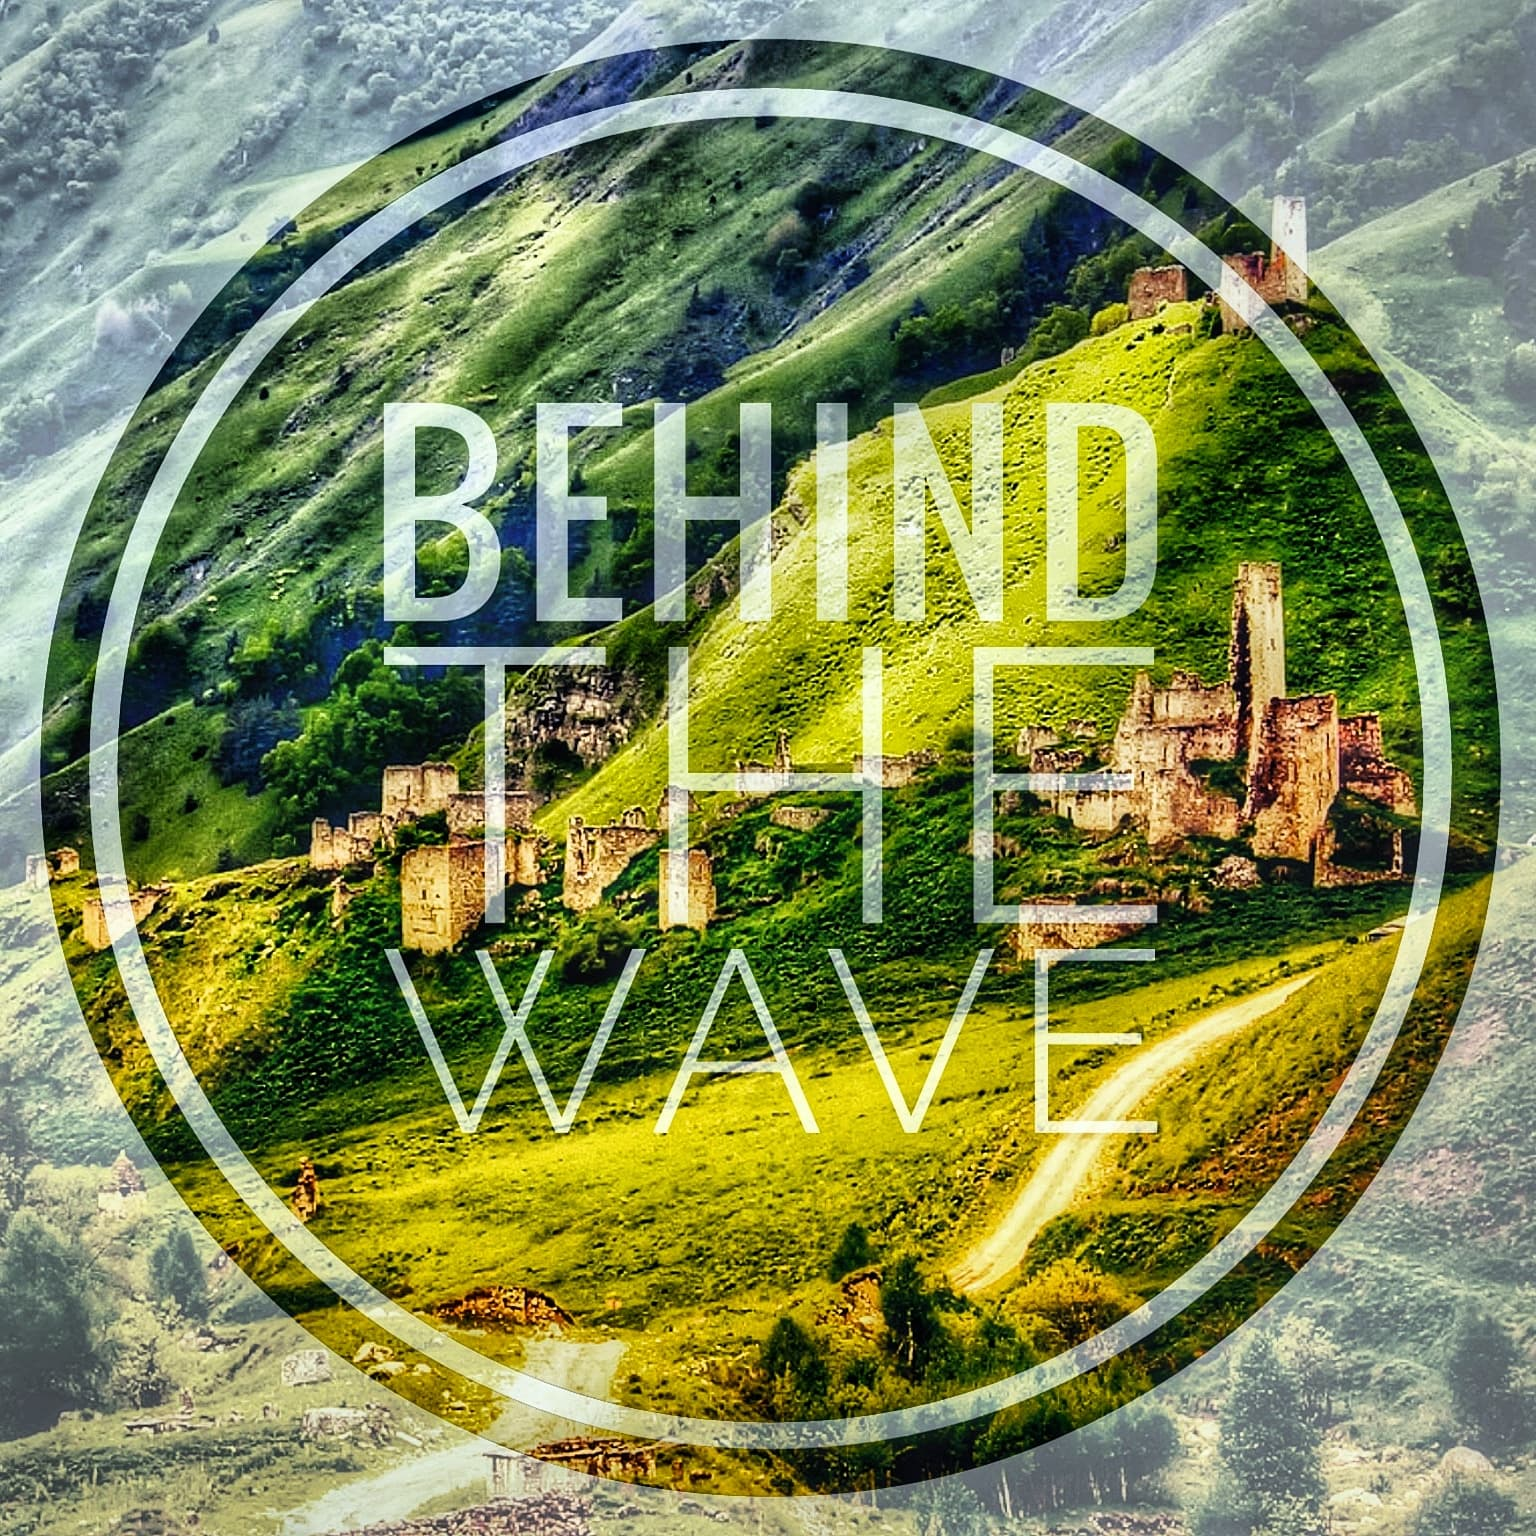 BEHIND THE WAVE - Ultra Trailv